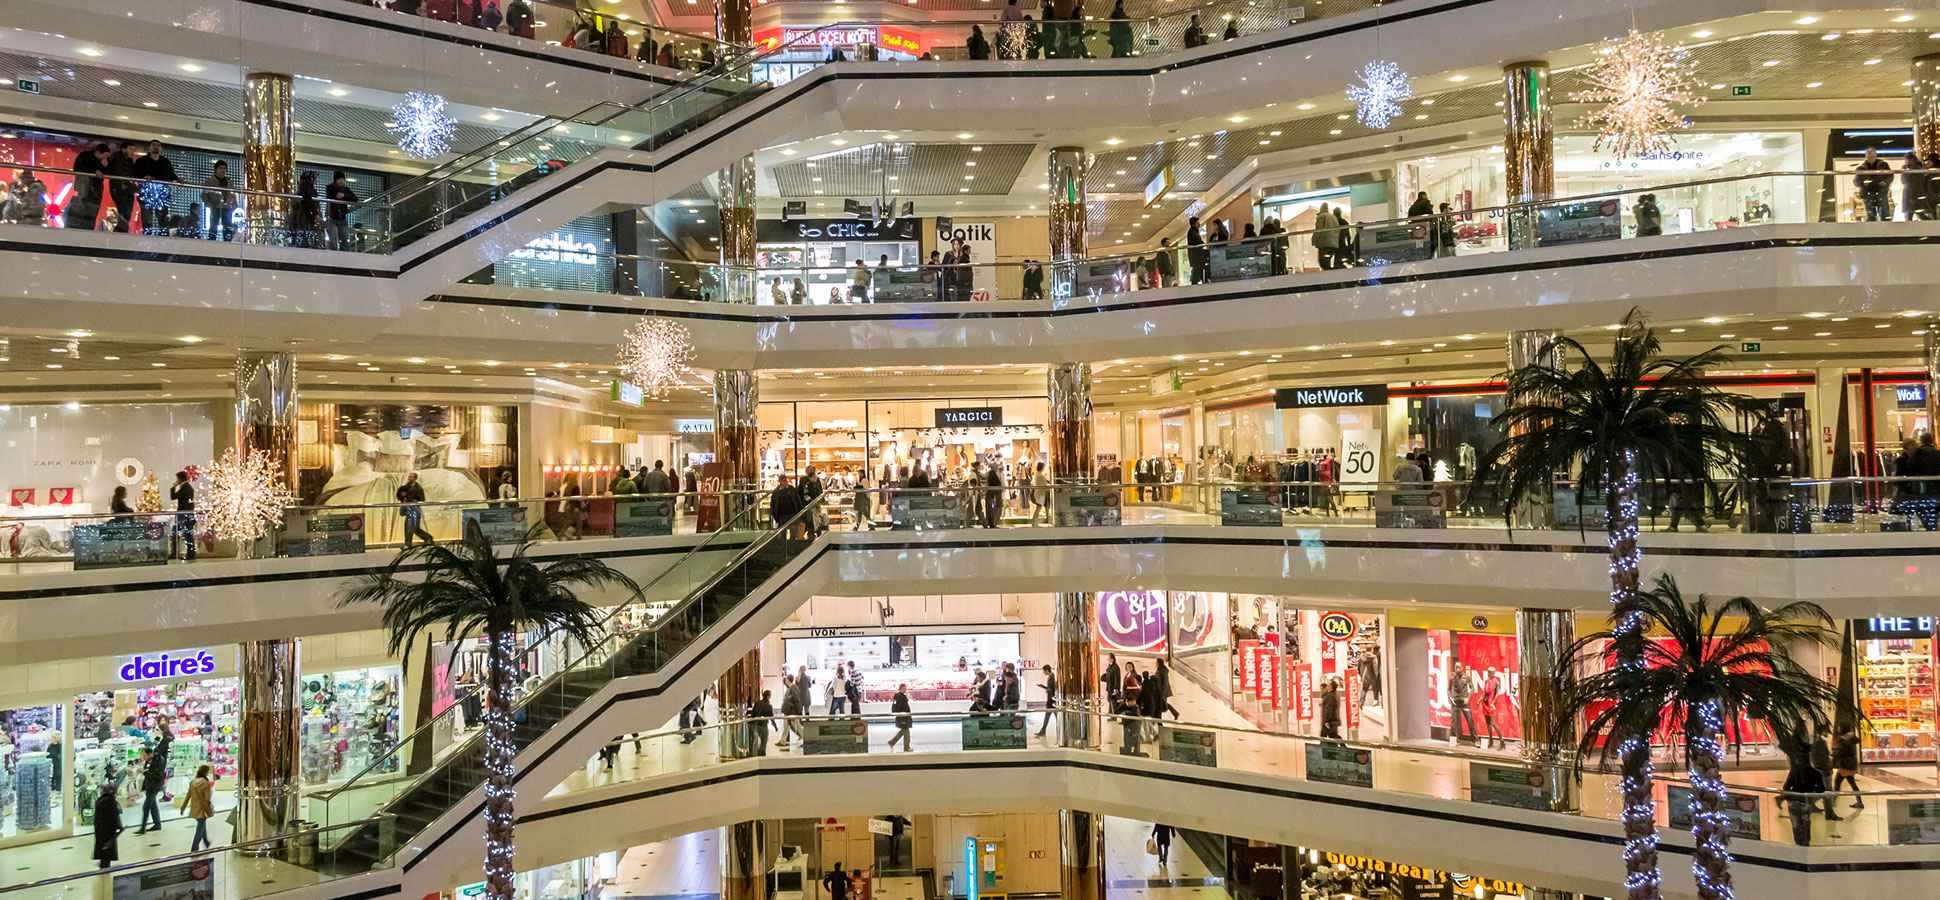 A Startup Brings Same-Day Delivery to Shopping Malls